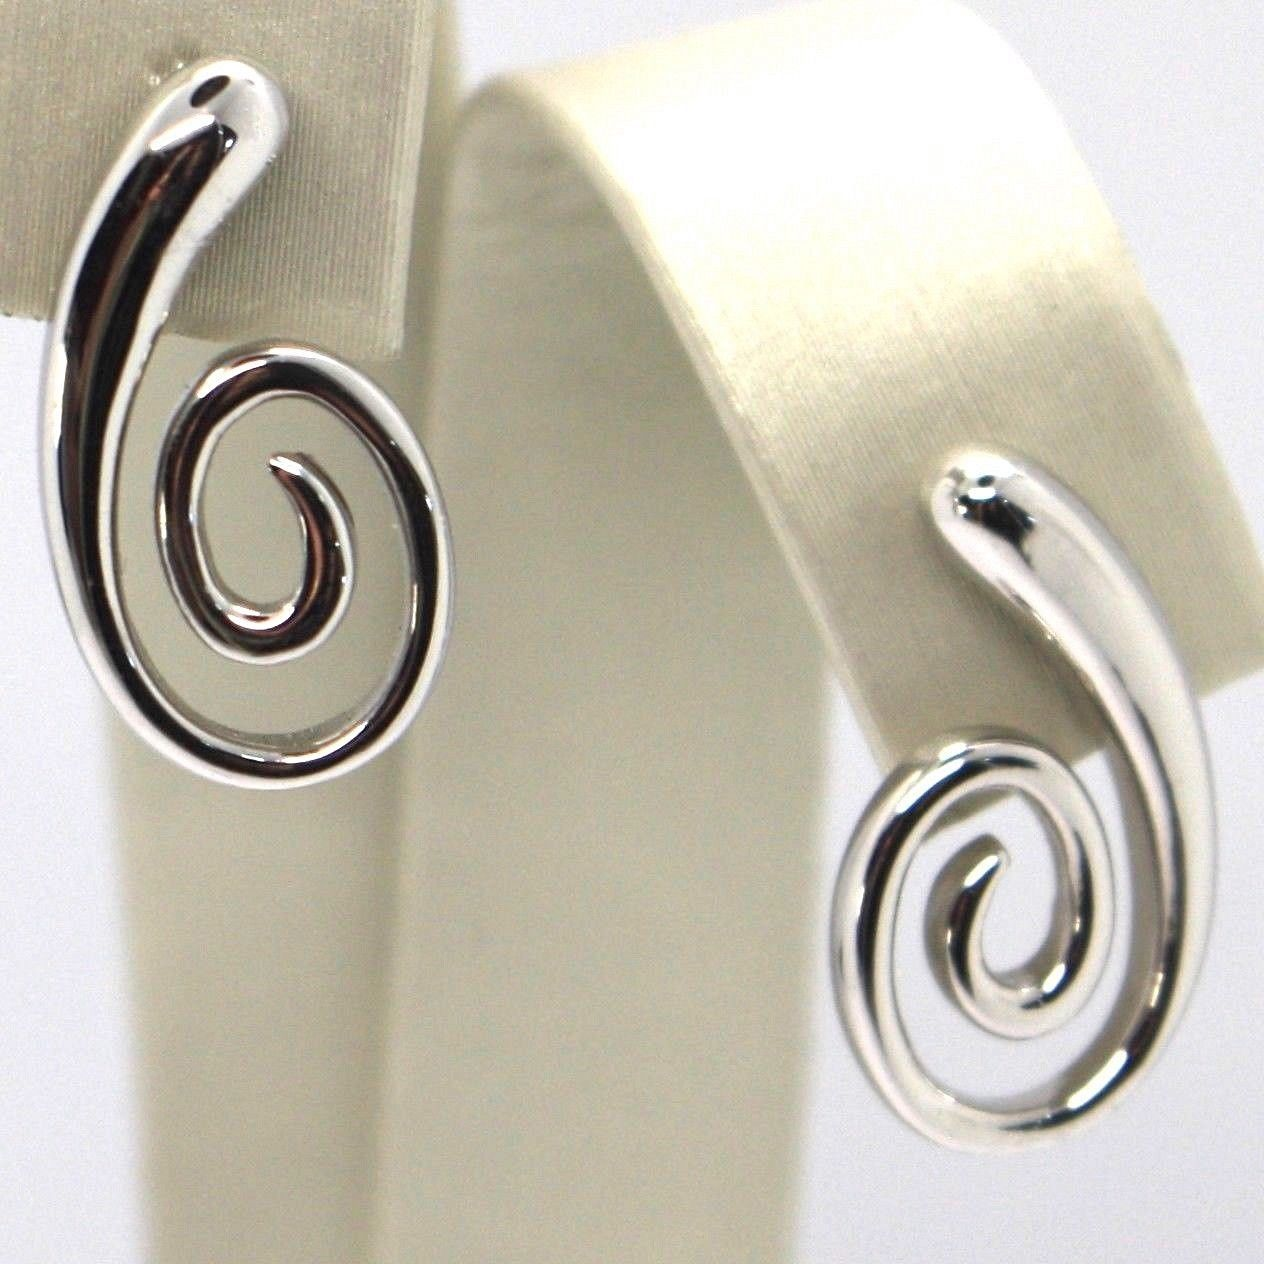 DROP EARRINGS WHITE GOLD 750 18K, DROP, SPIRAL, CURVED